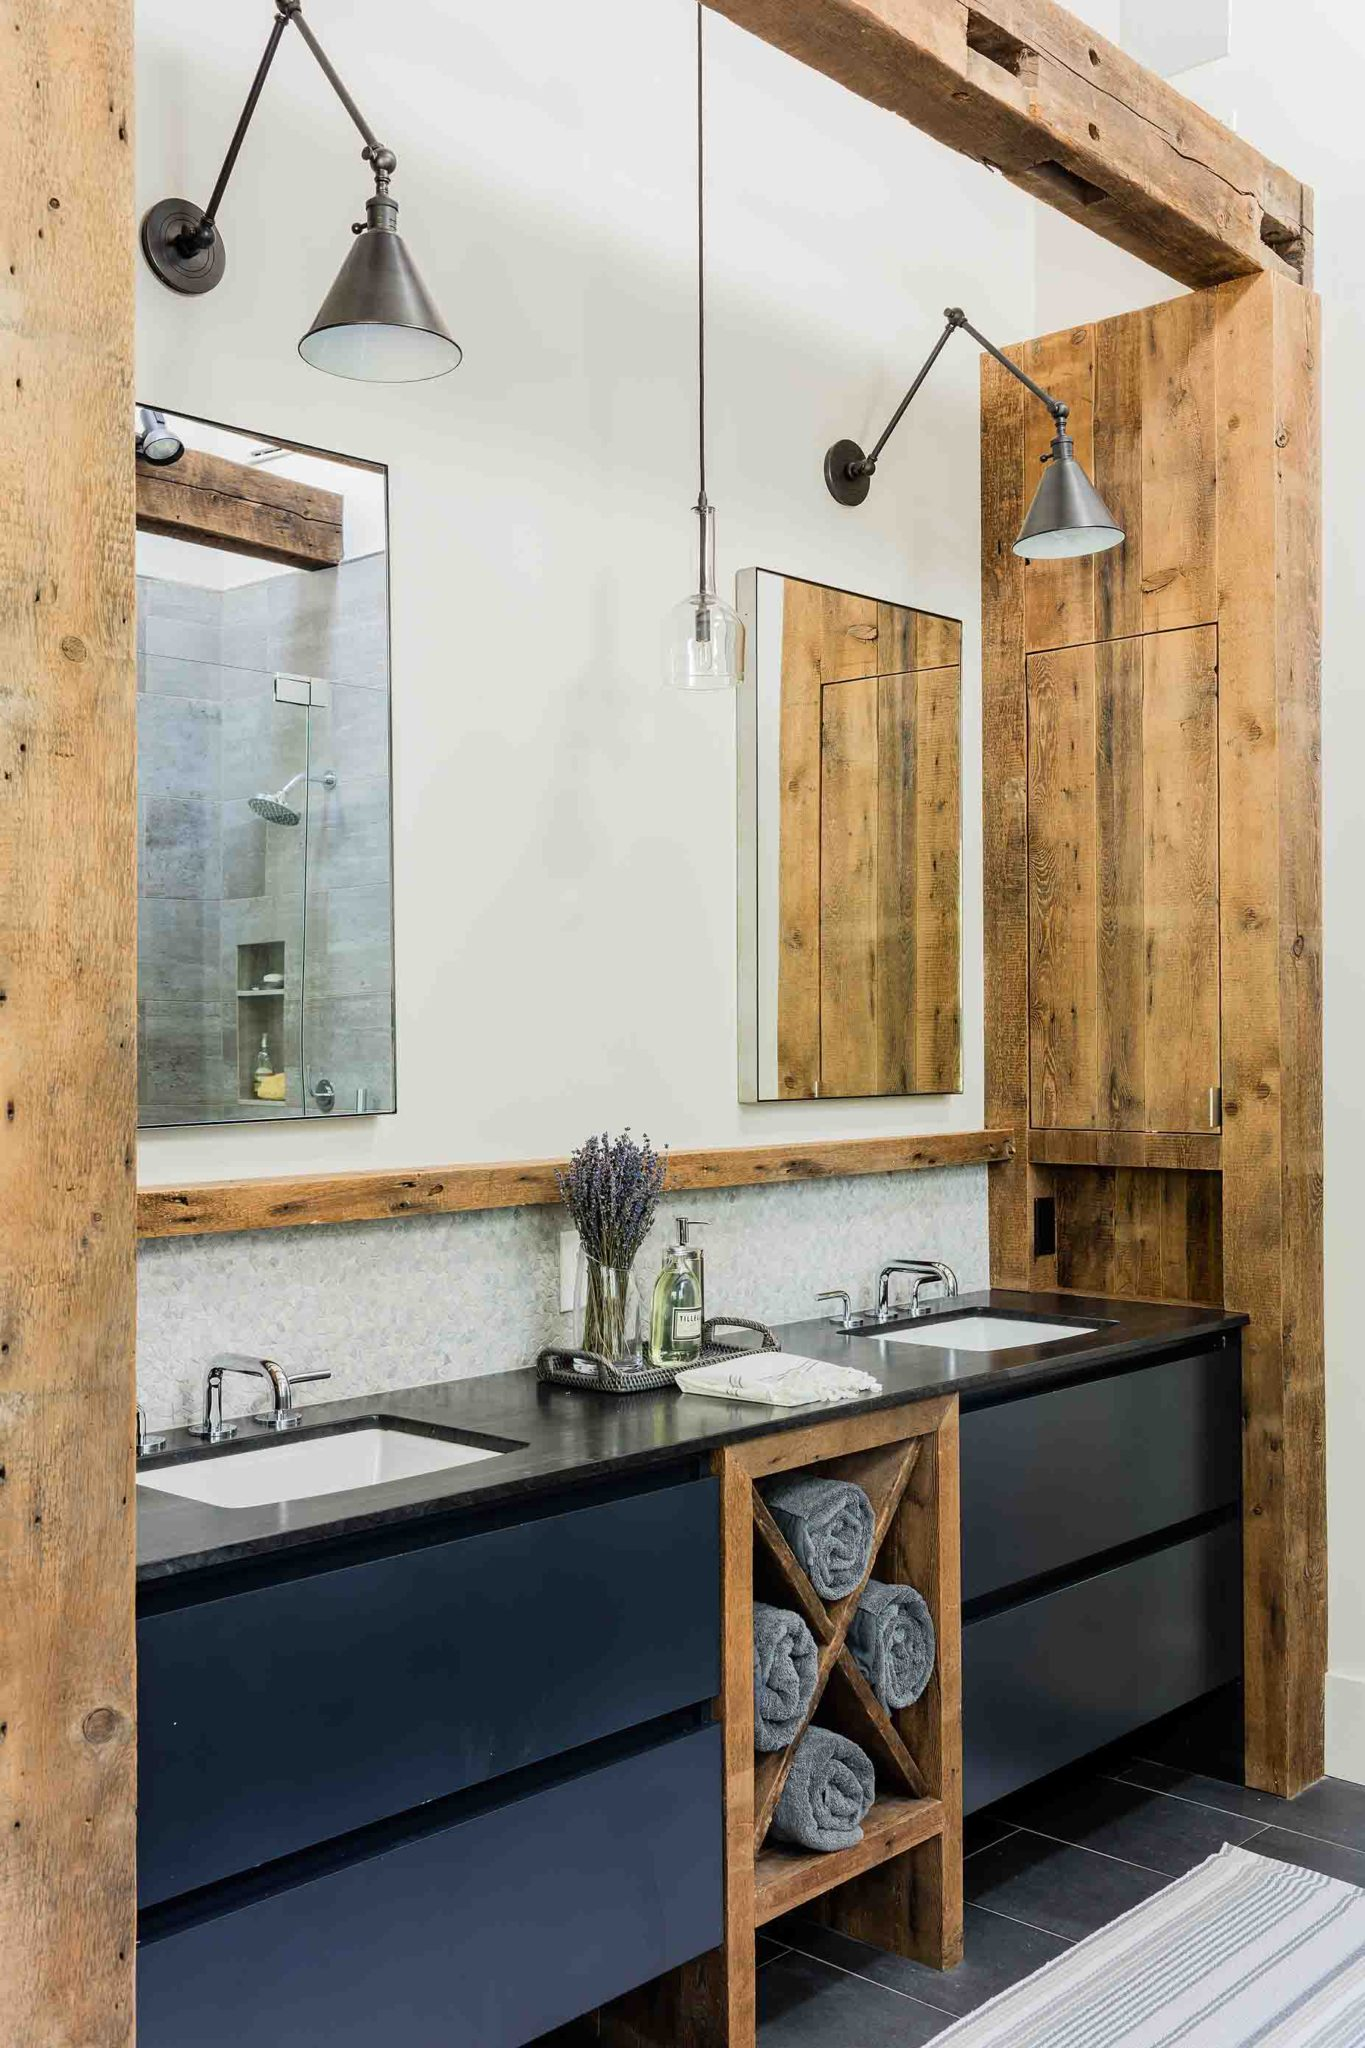 Rustic bathroom with wood beams and dark vanity by Jennifer Palumbo Inc.